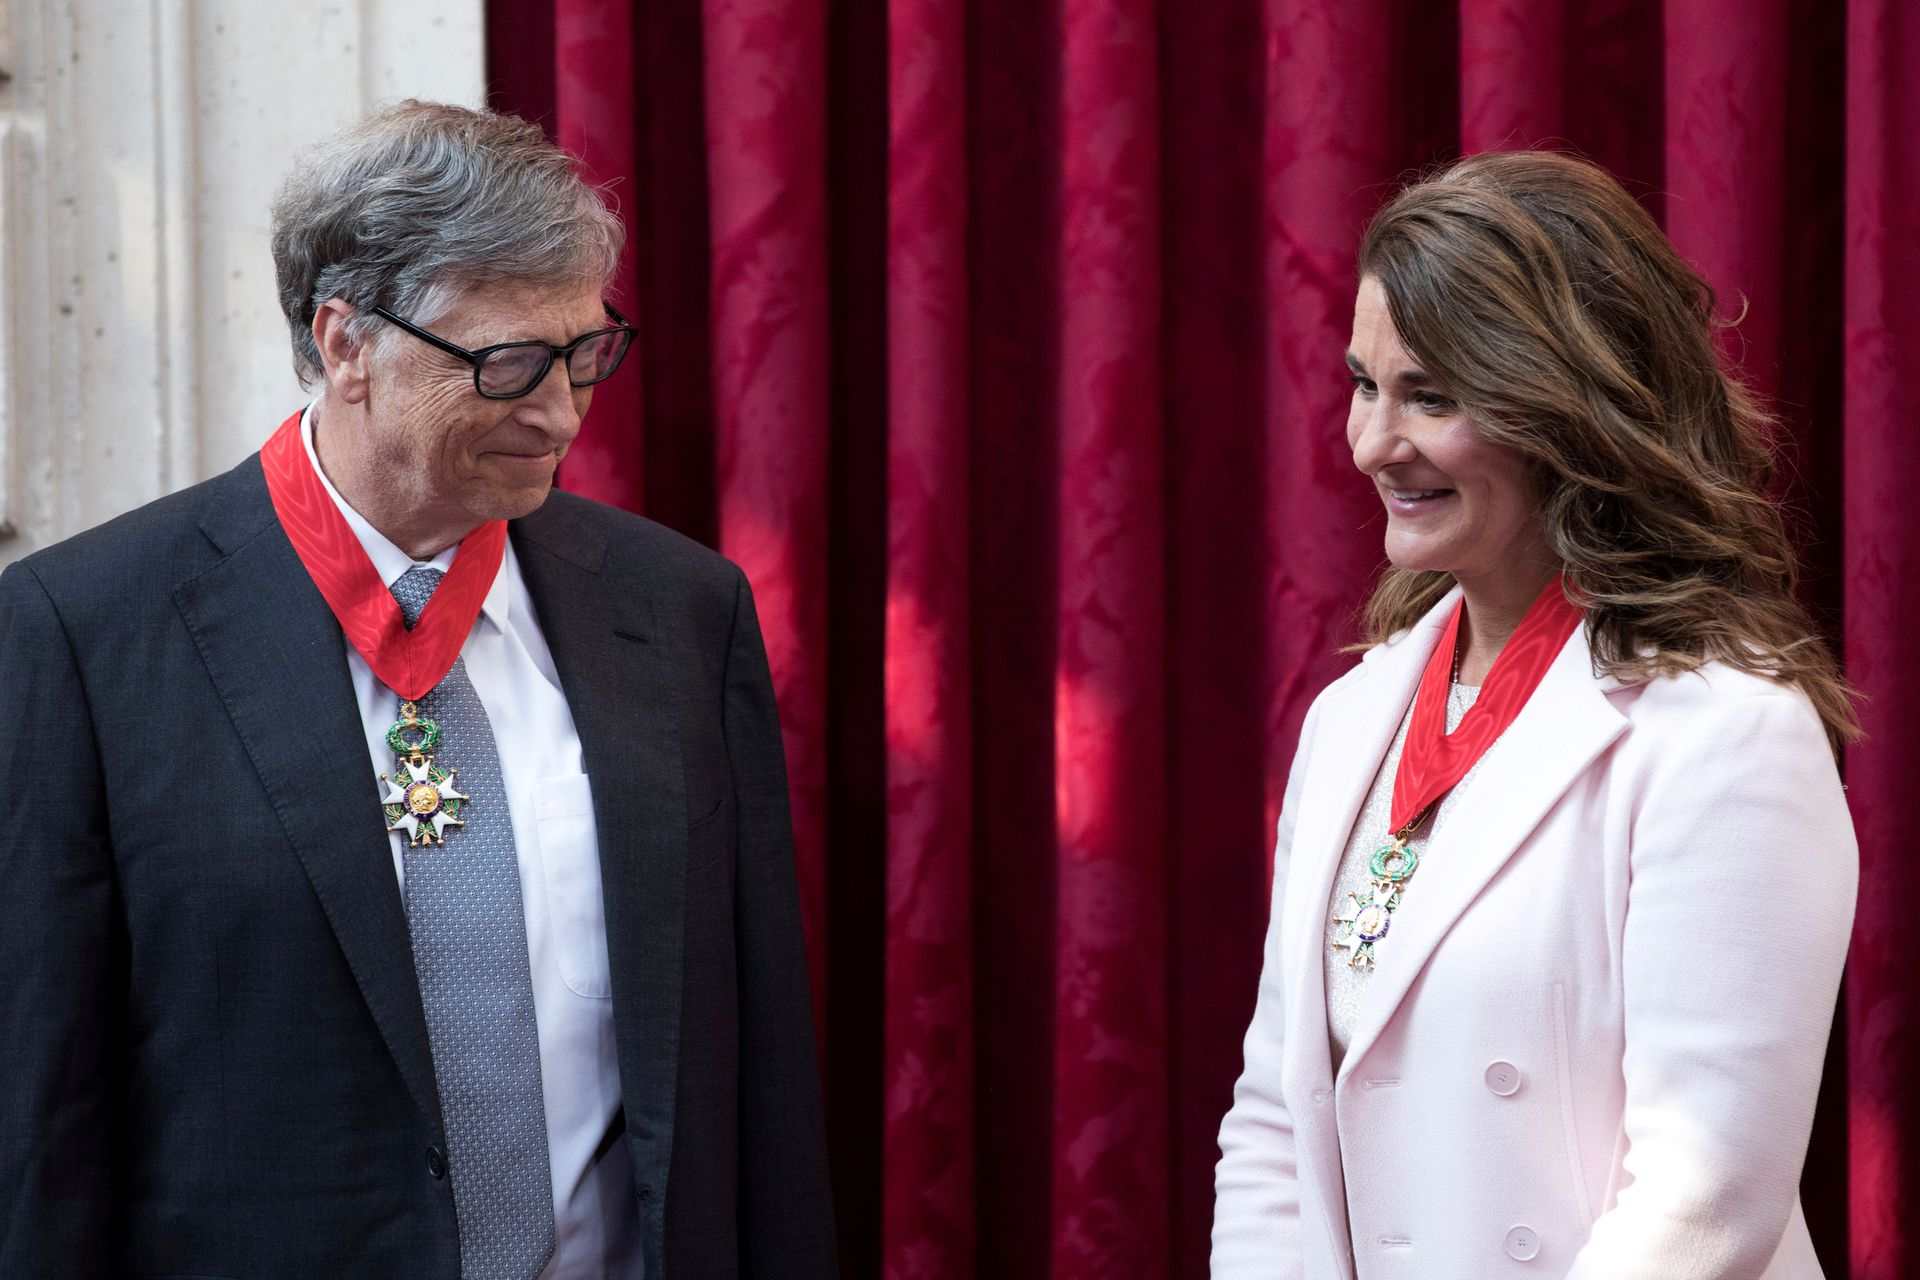 Bill gates and Jeff Bezos divorces prove wealth doesn't bring happiness